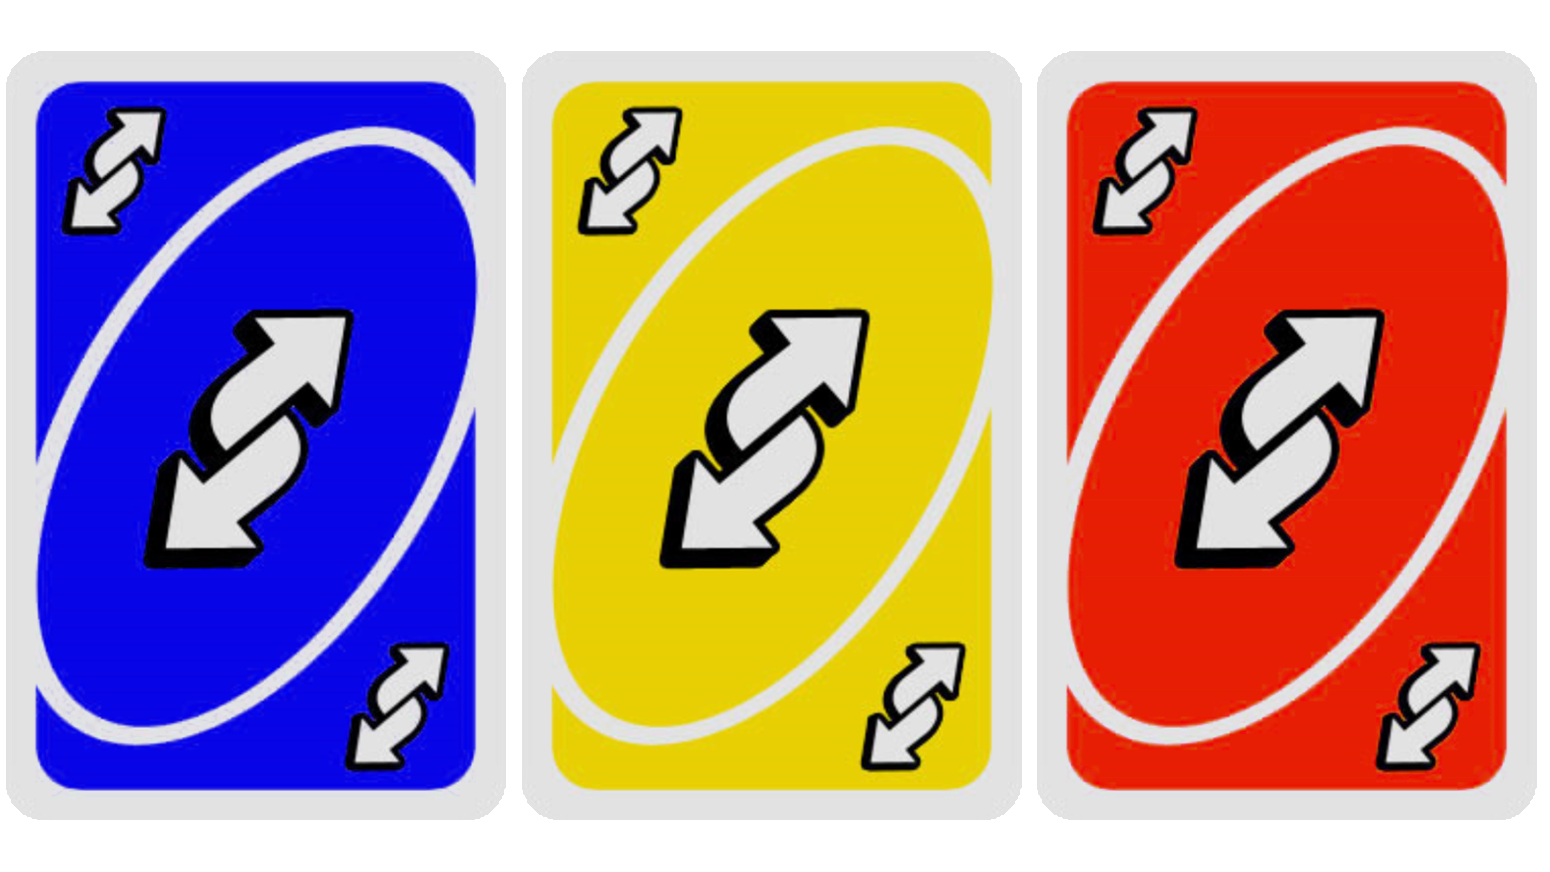 Uno Reverse Card | Know Your Meme